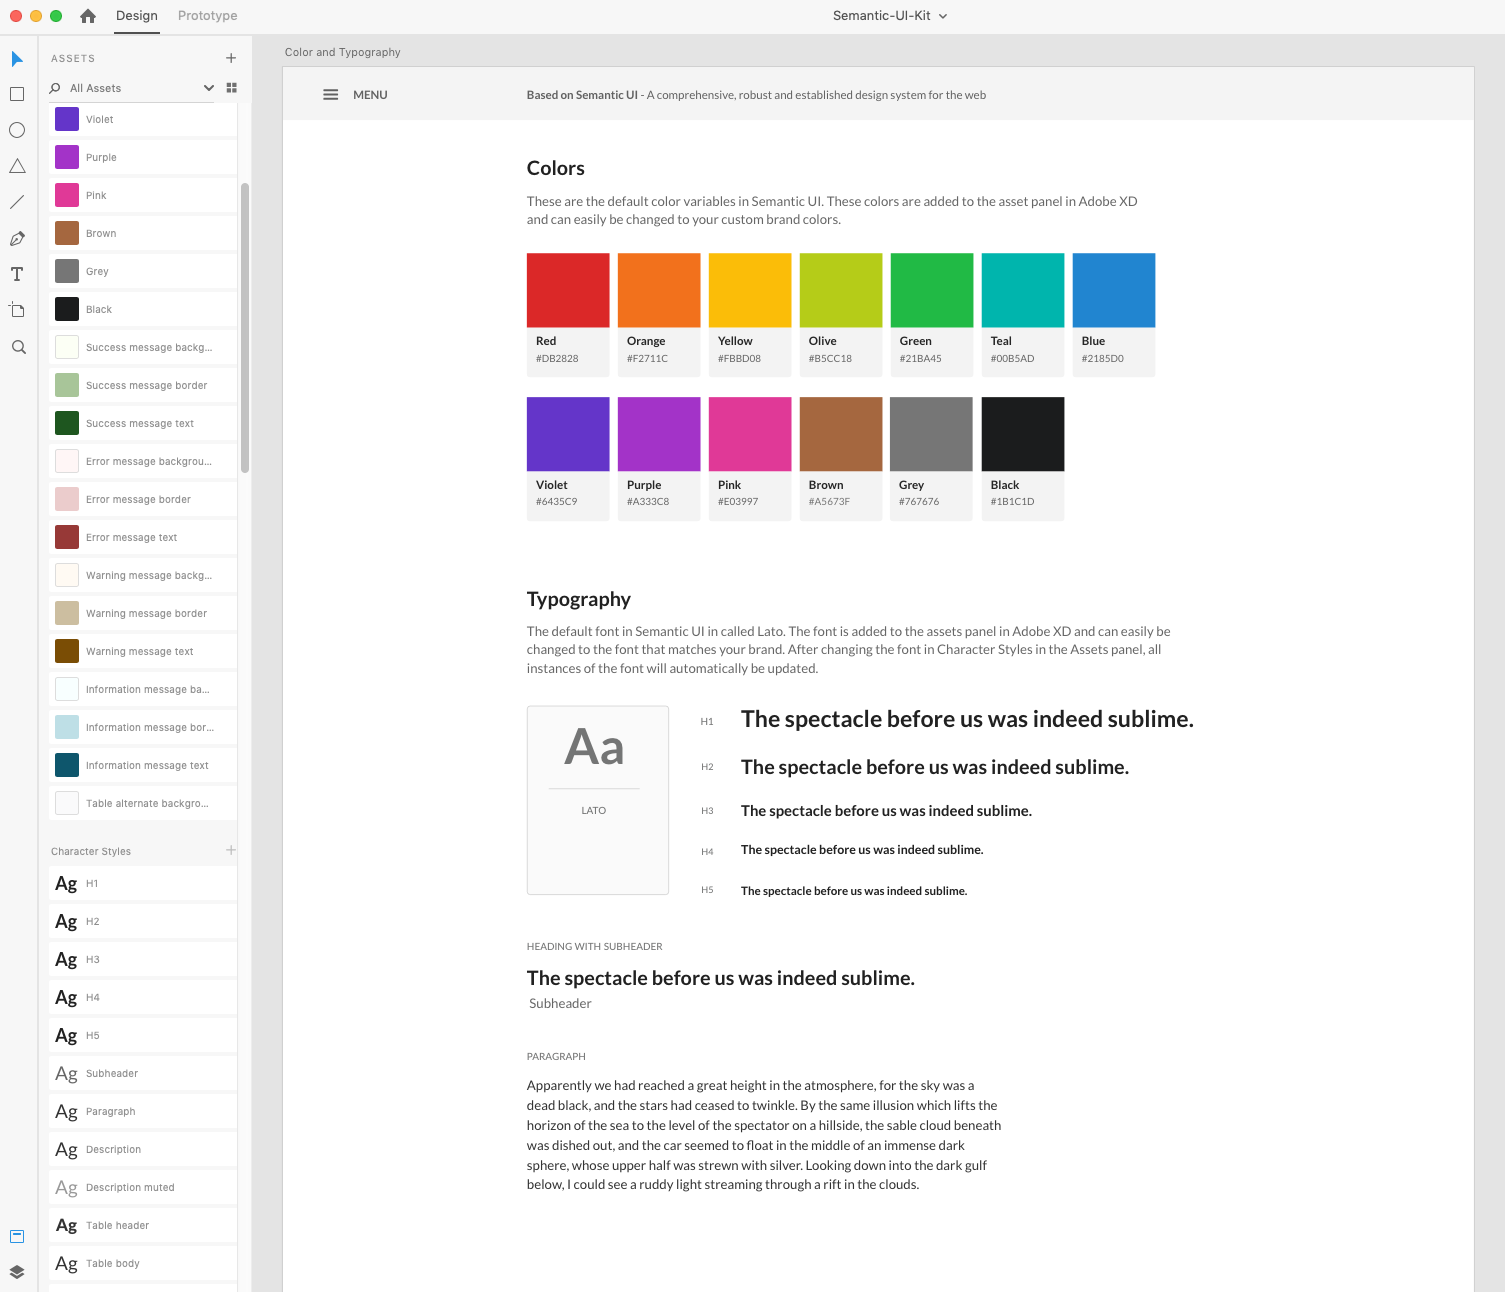 Designing a complete UI Kit for Adobe XD based on Semantic UI